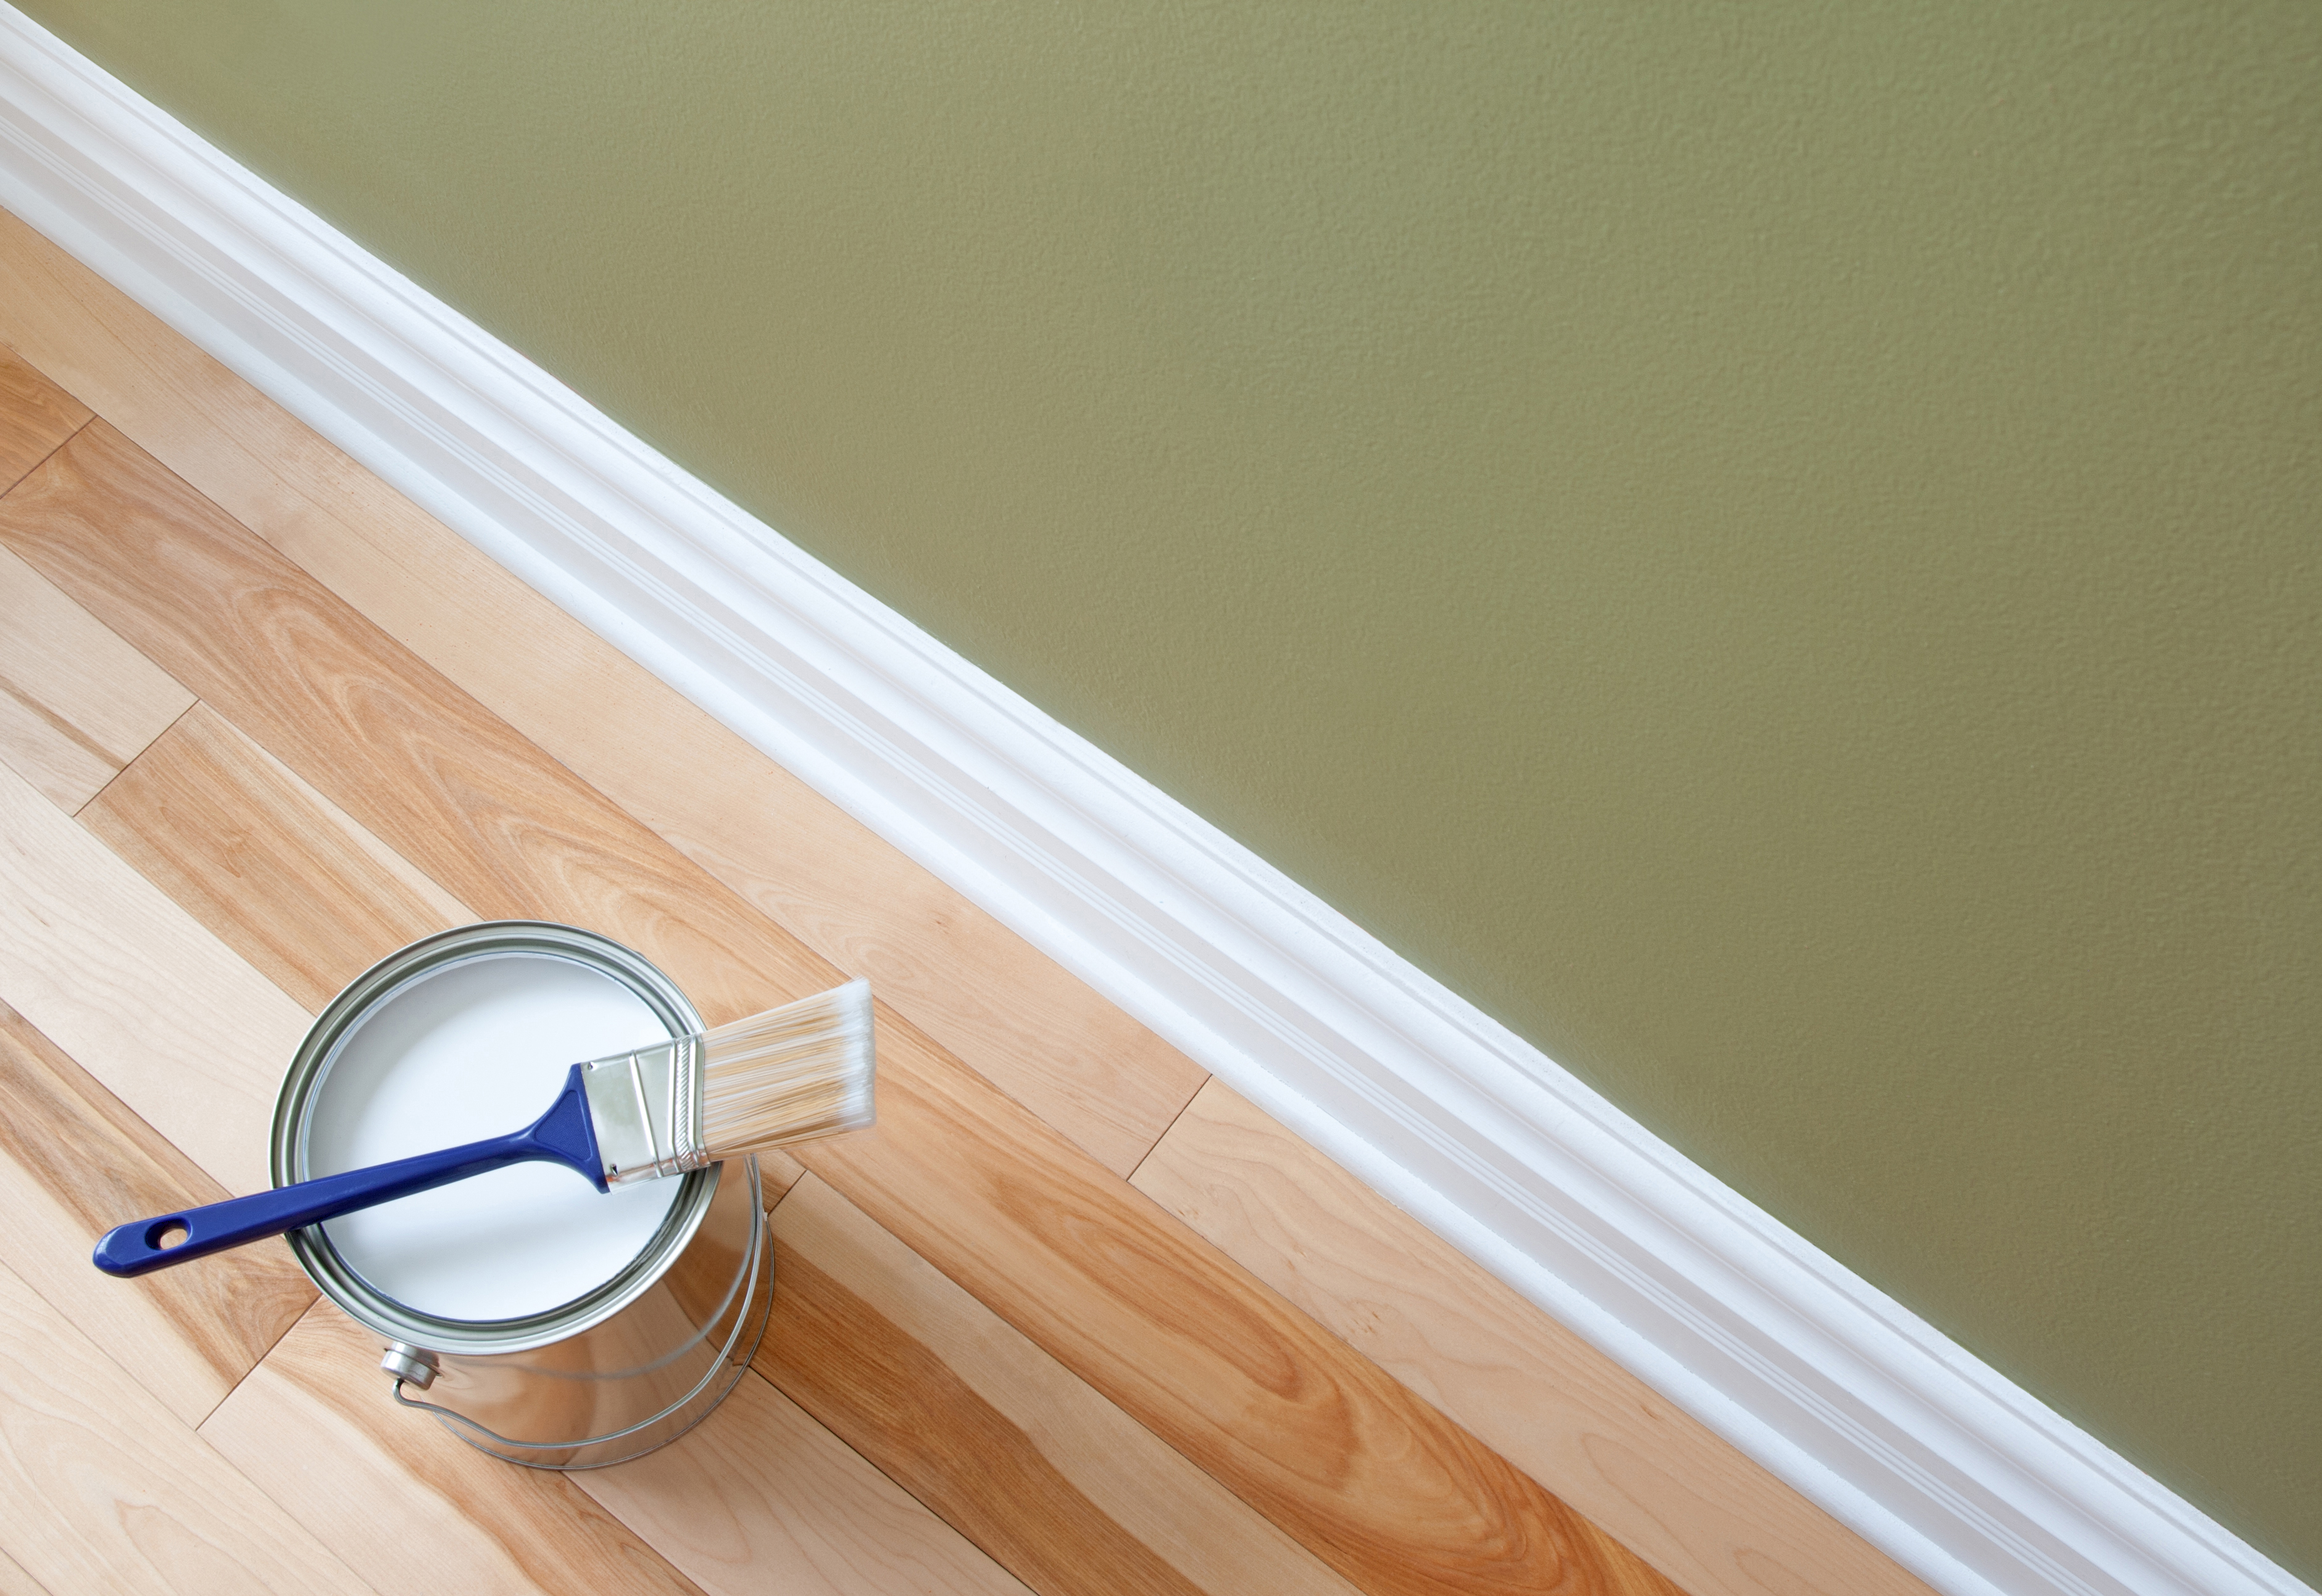 How to Paint Baseboard Moldings